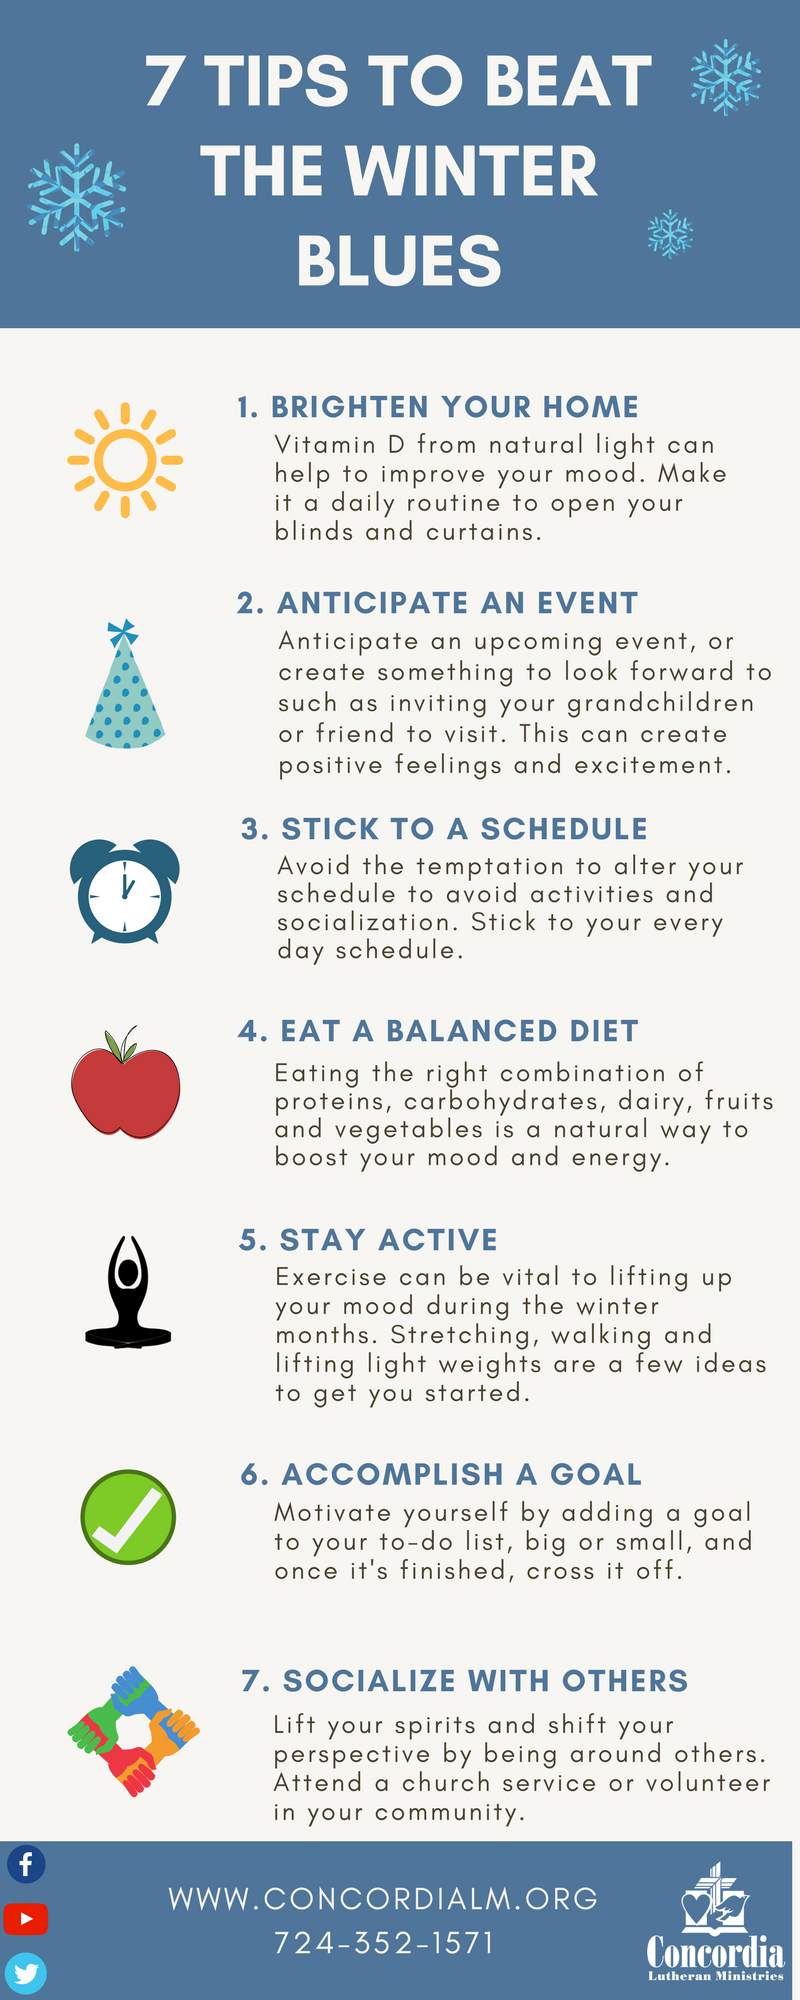 Tips to Beat the Winter Blues